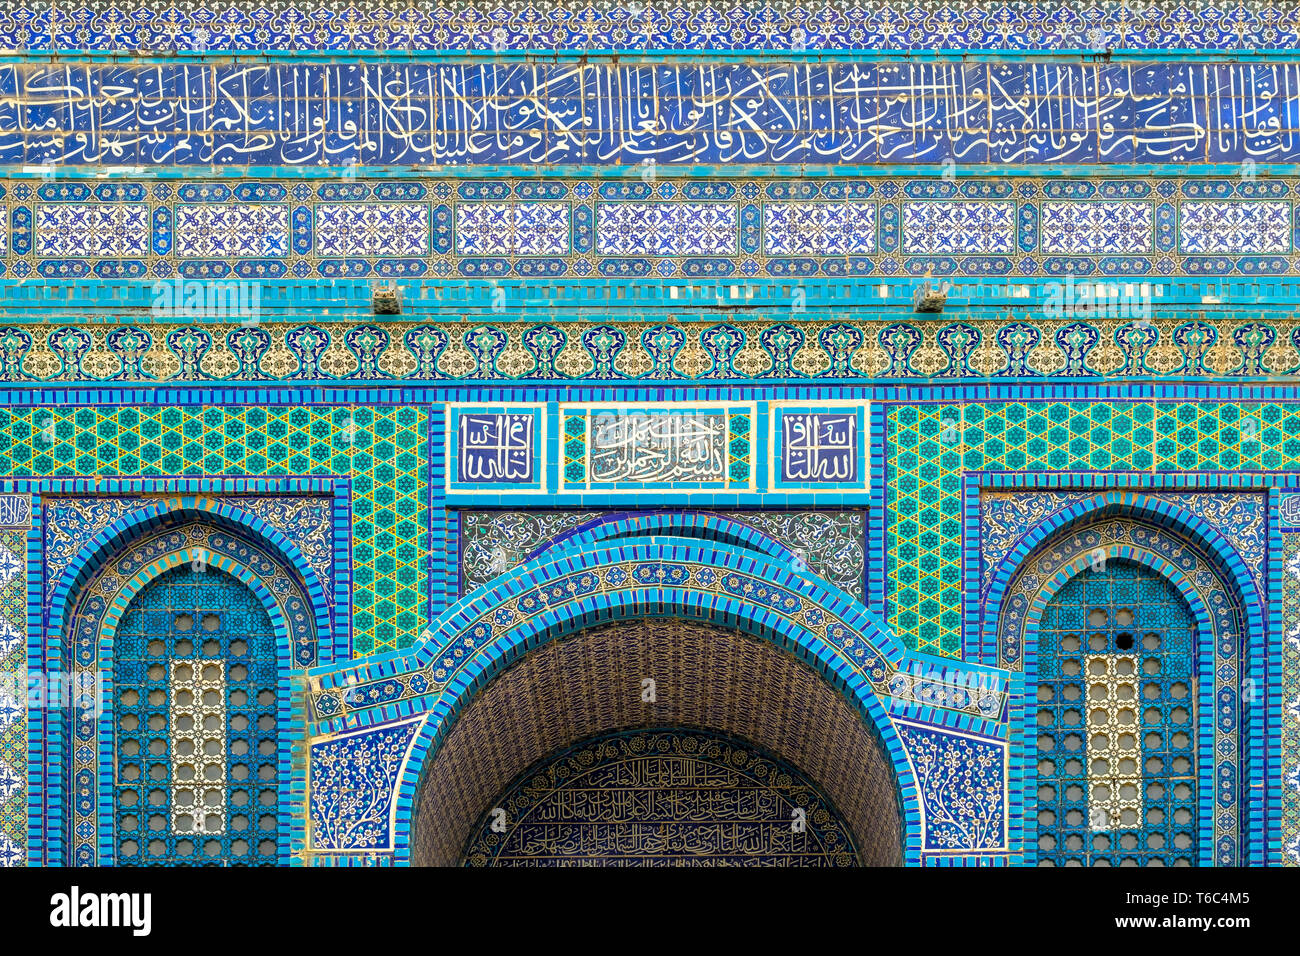 Israel, Jerusalem District, Jerusalem. Detail of ornate decorative tile on the exterior of the Dome of the Rock on Temple Mount. Stock Photo